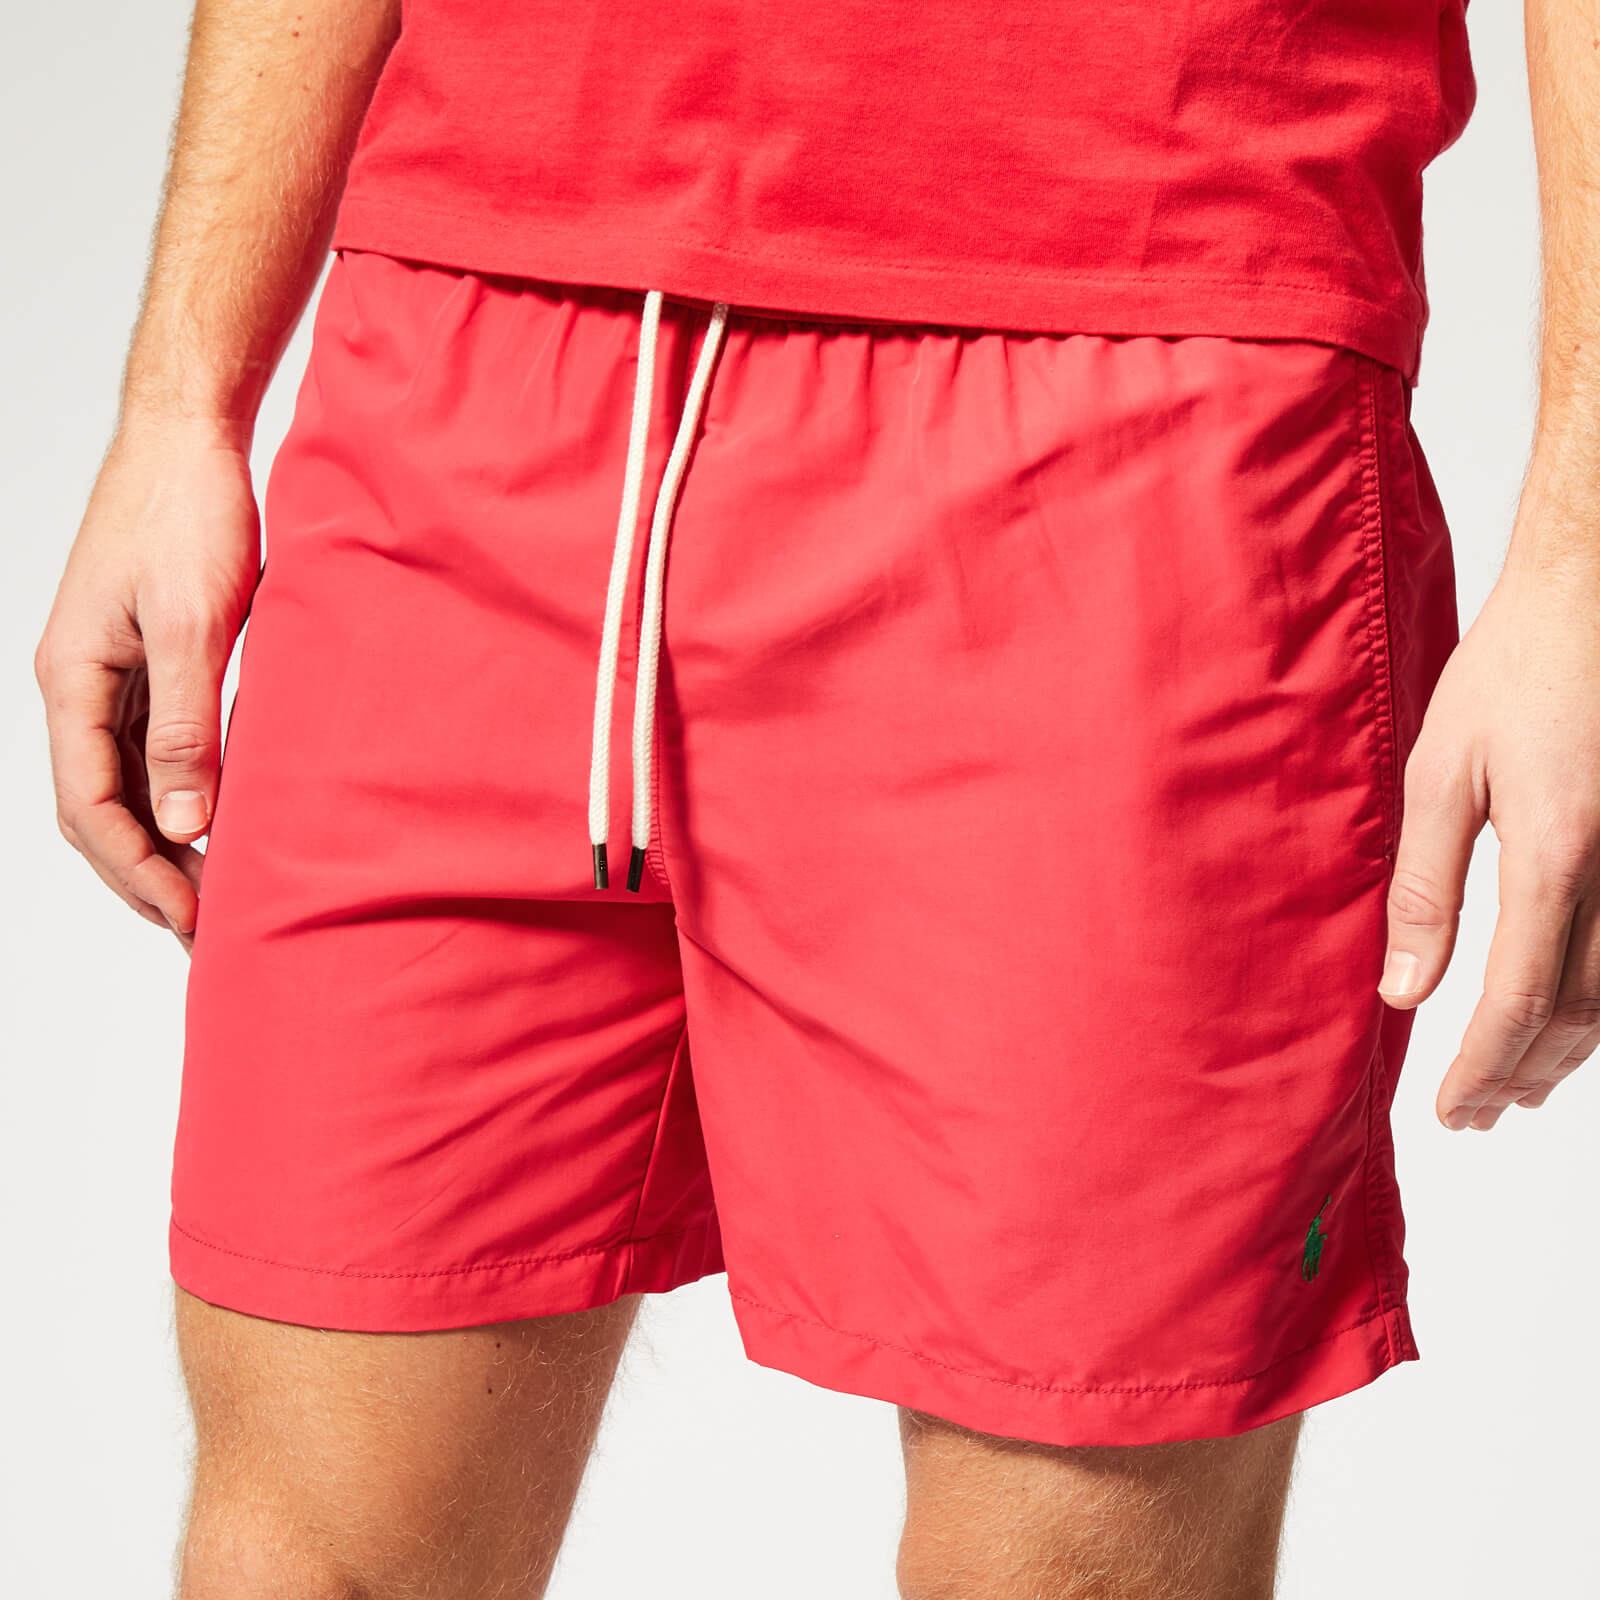 18e3a50b0e Polo Ralph Lauren Men's Traveller Swim Shorts - Cactus Flower - Free UK  Delivery over £50